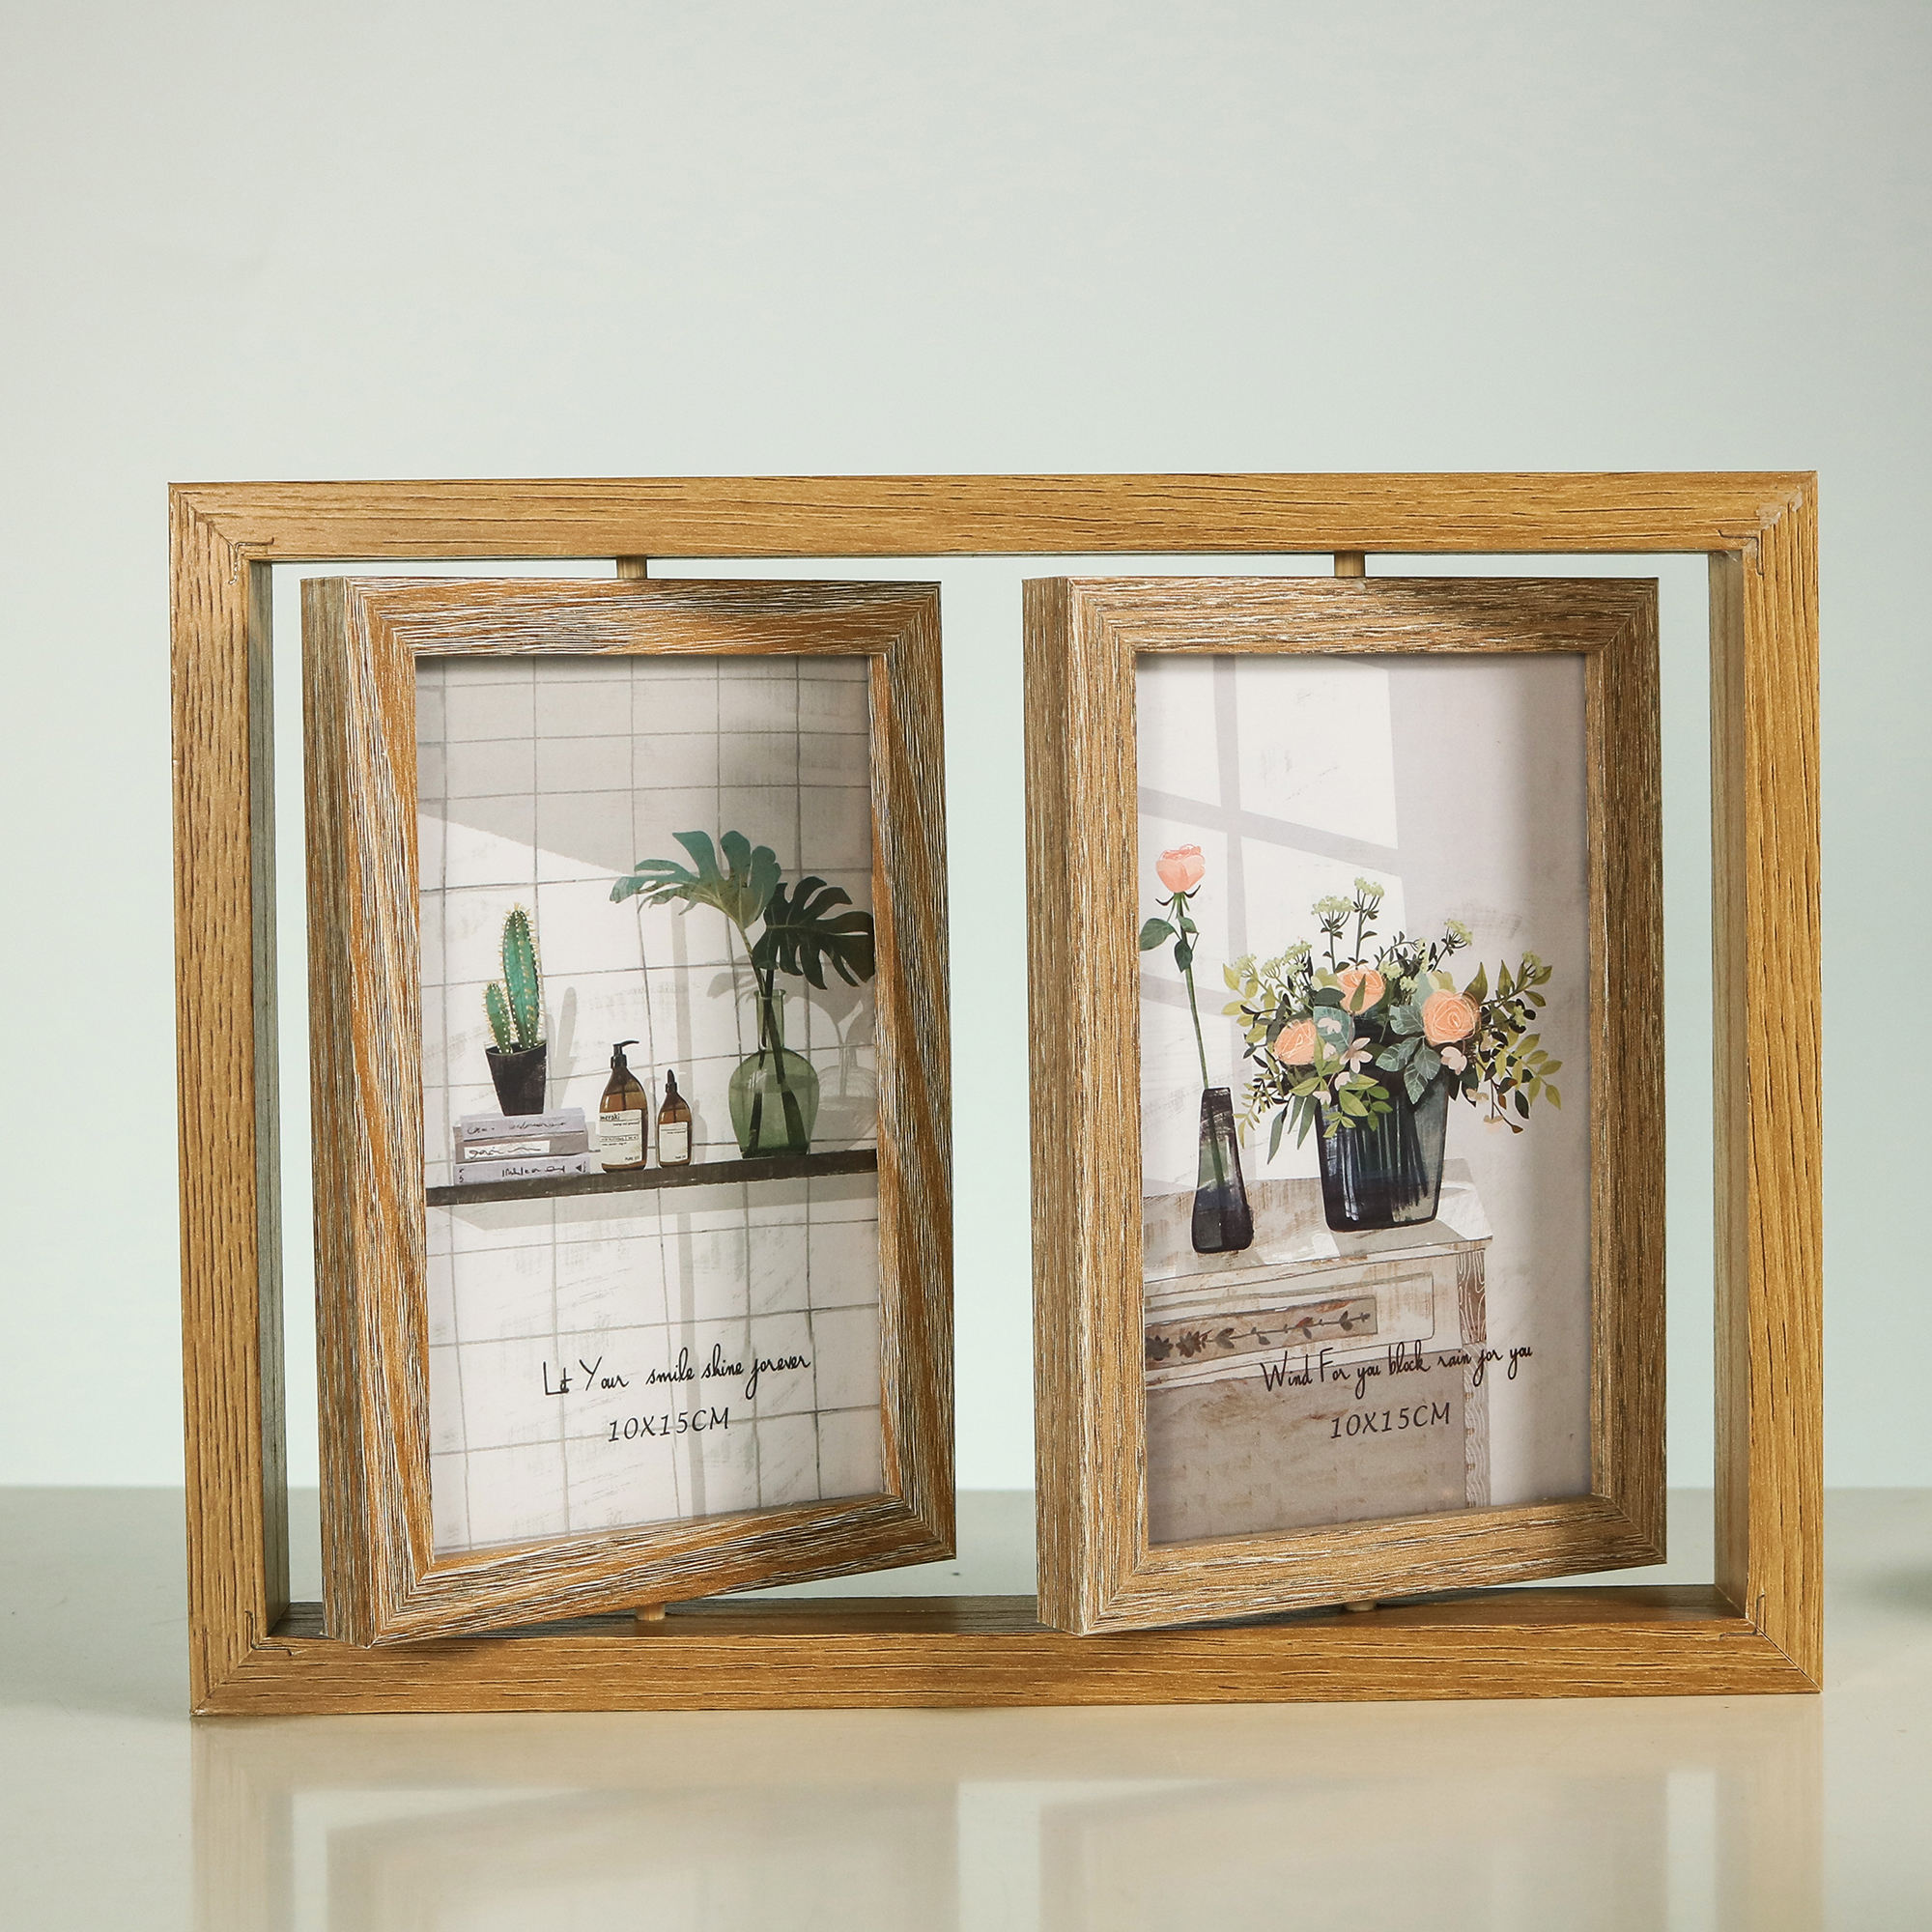 yiwu art factory wood material double frames 4x6 rotatable picture wooden photo frame for couples